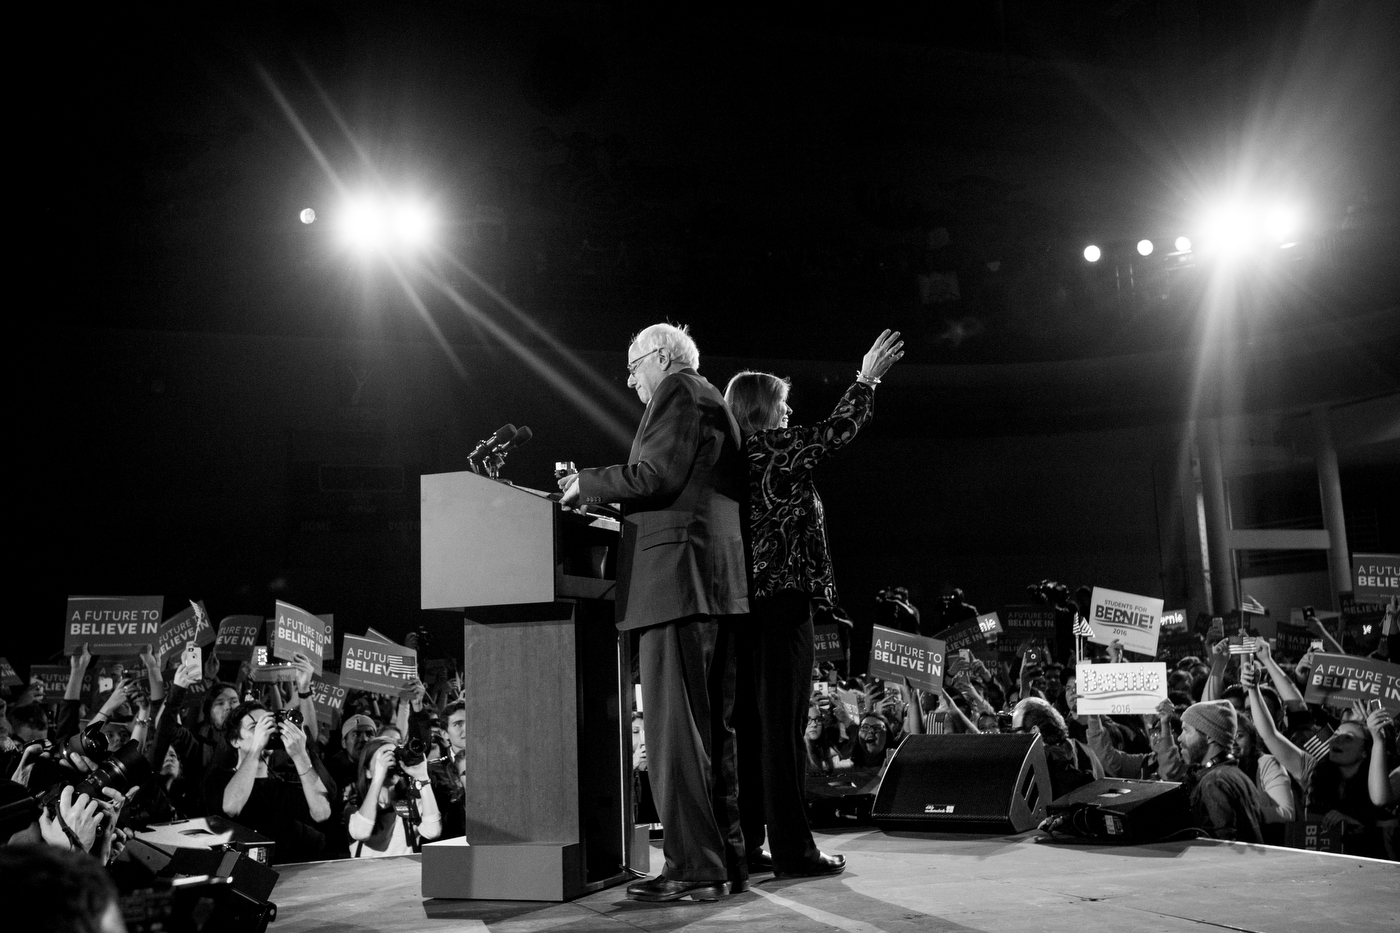 Democratic presidential candidate Bernie Sanders takes the stage as his wife Jane waves to the crowd at a campaign rally and concert at the University of Iowa in Iowa City, Iowa on January 30. Almost 4,000 attended the rally, where bands Foster the People and Vampire Weekend opened, but Bernie Sanders drew the most applause.